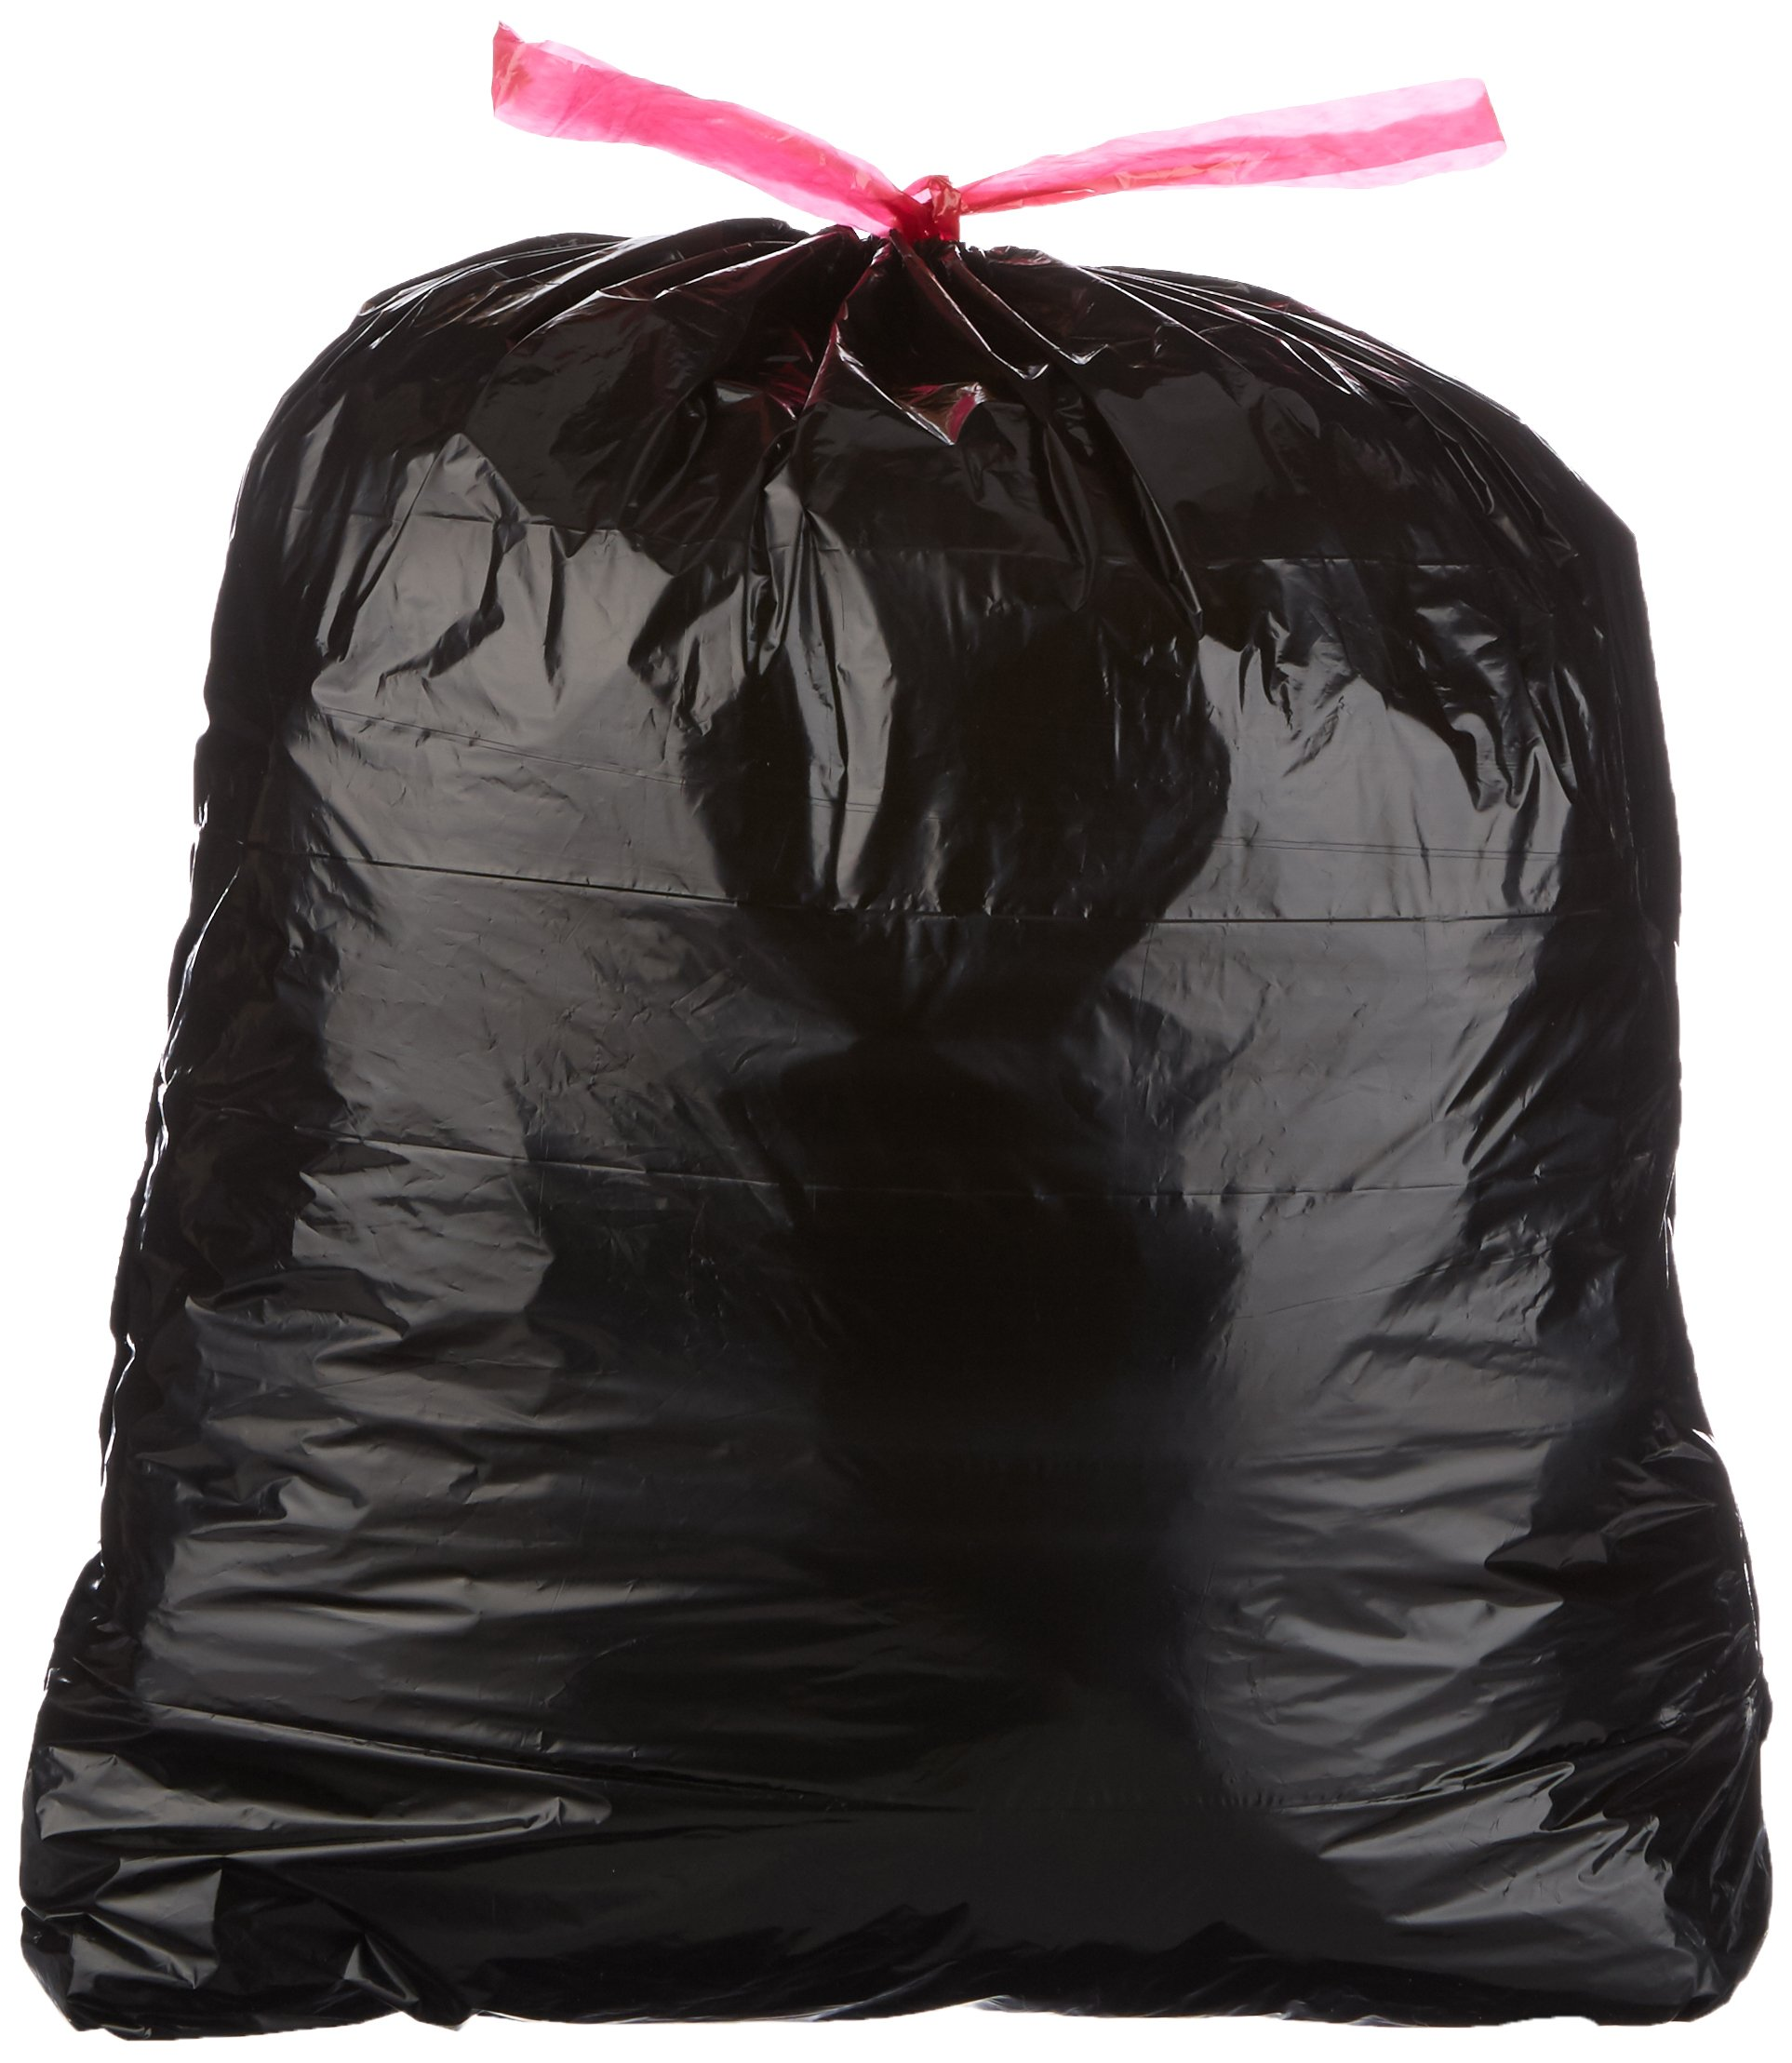 AmazonBasics 30 Gallon Large Trash Bag with Draw Strings, 1.2 mil, 120-Count by AmazonBasics